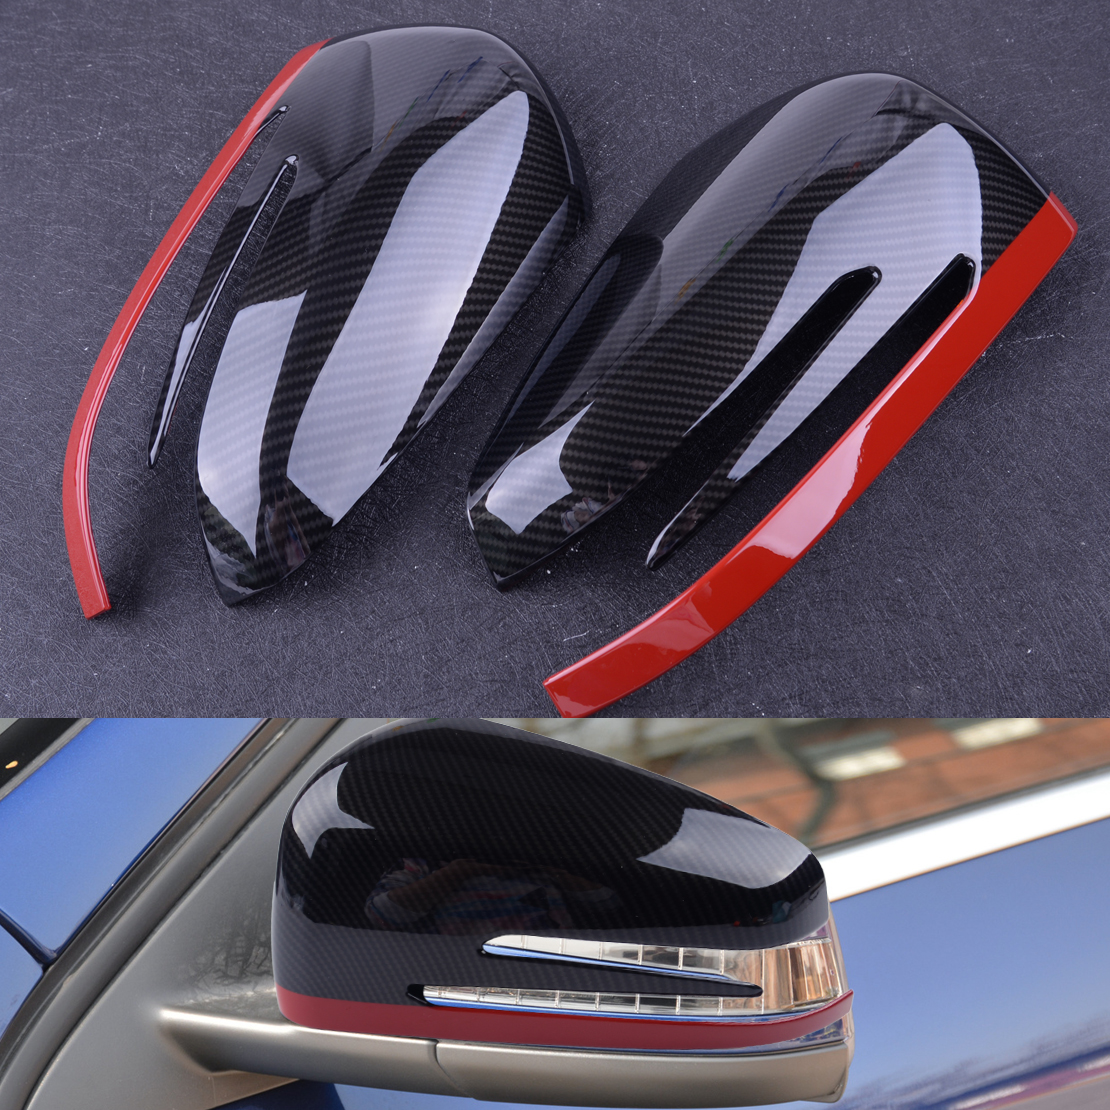 beler 2Pcs ABS Rear View Mirror Protection Trim Fit for Mercedes Benz A CLA GLA GLK Class W117 W176 2014 2015 2016 2017